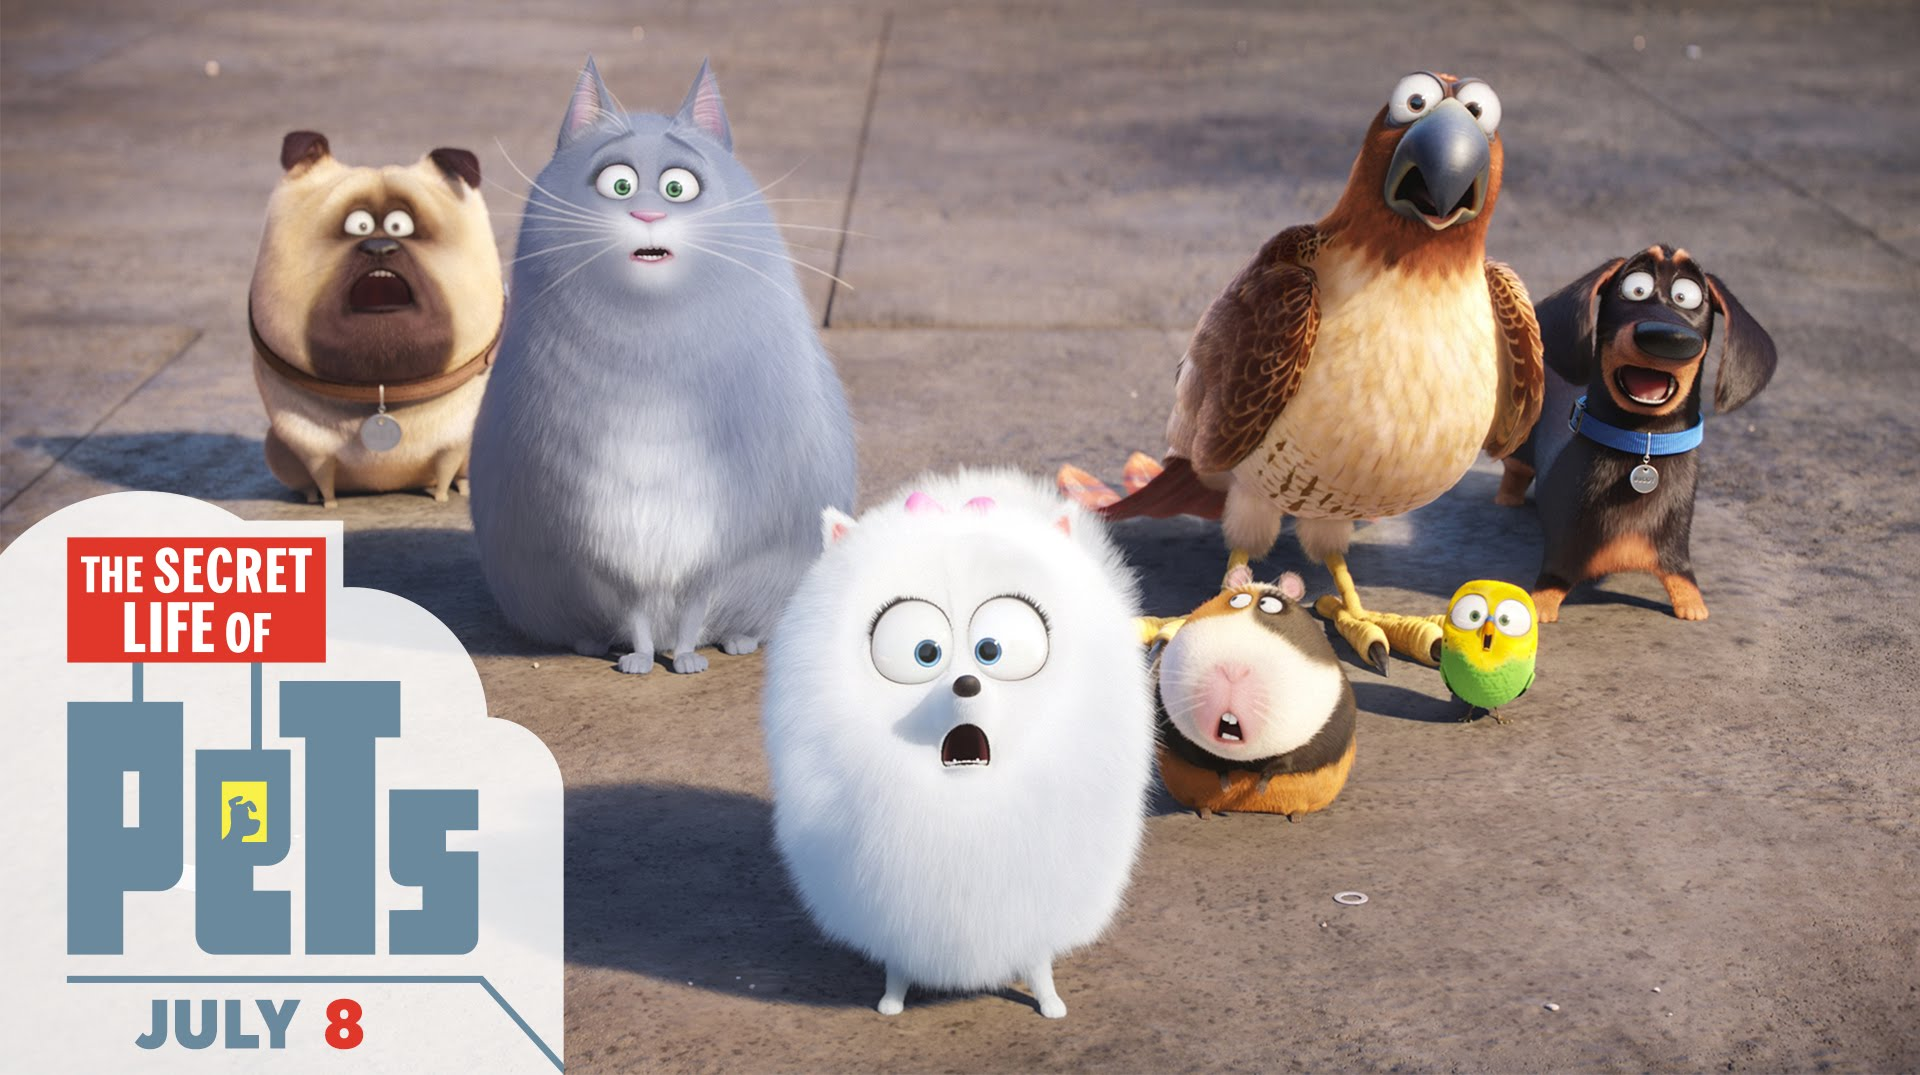 The Secret Life Of Pets Review - OC Movie Reviews - Movie Reviews, Movie News, Documentary Reviews, Short Films, Short Film Reviews, Trailers, Movie Trailers, Interviews, film reviews, film news, hollywood, indie films, documentaries